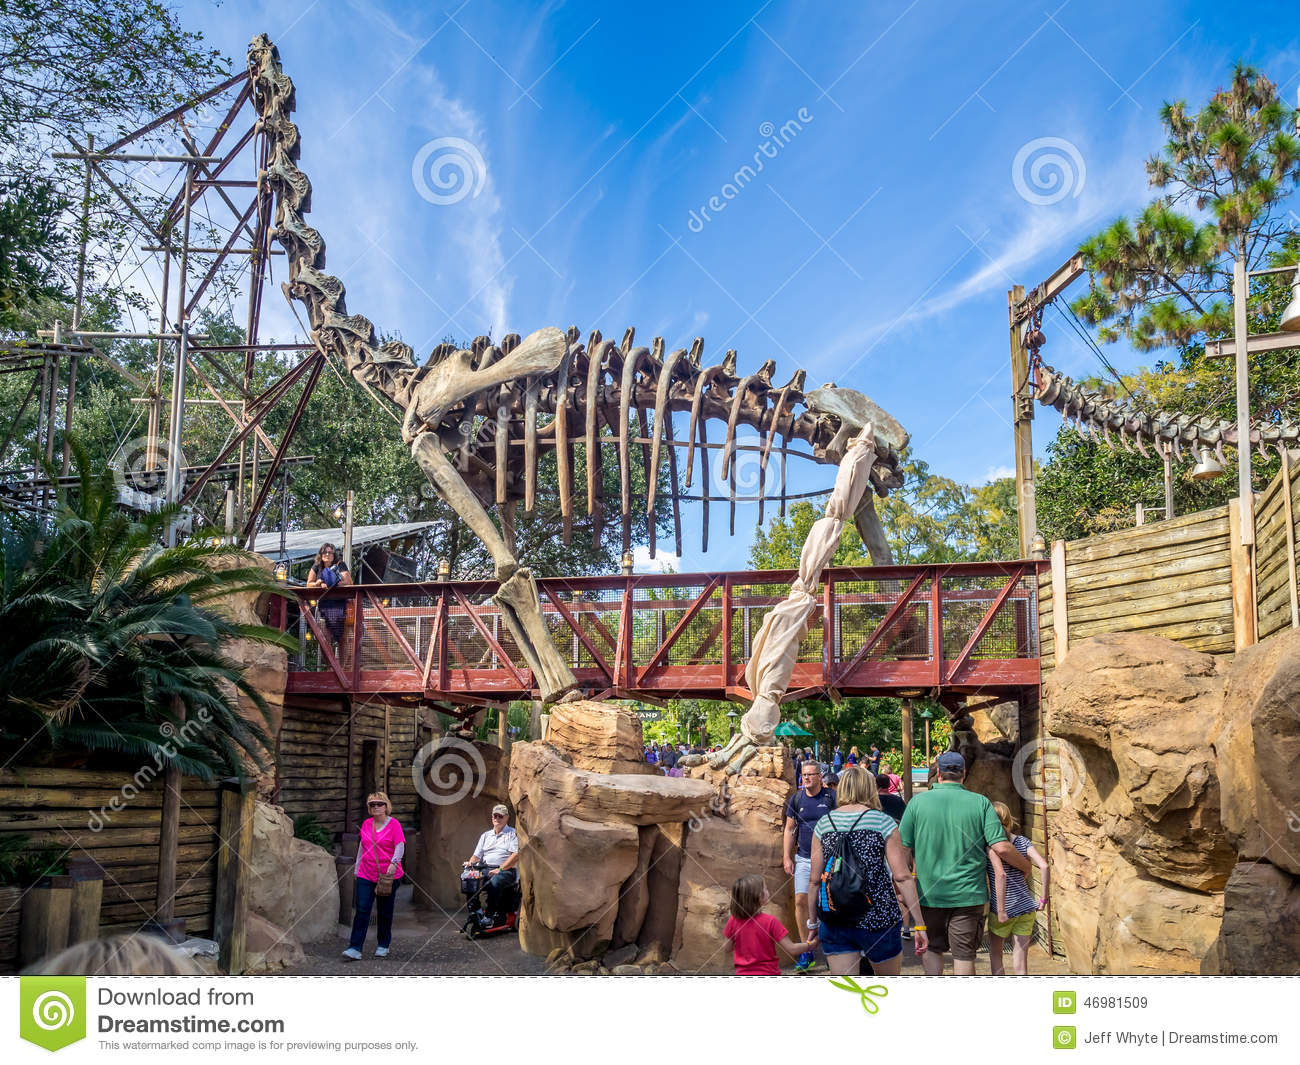 an analysis of the animal kingdom a disney park June 2018 walt disney  magic kingdom park for prices that you can manage with walt disney world coupons and vacation packages our analysis of a year's.